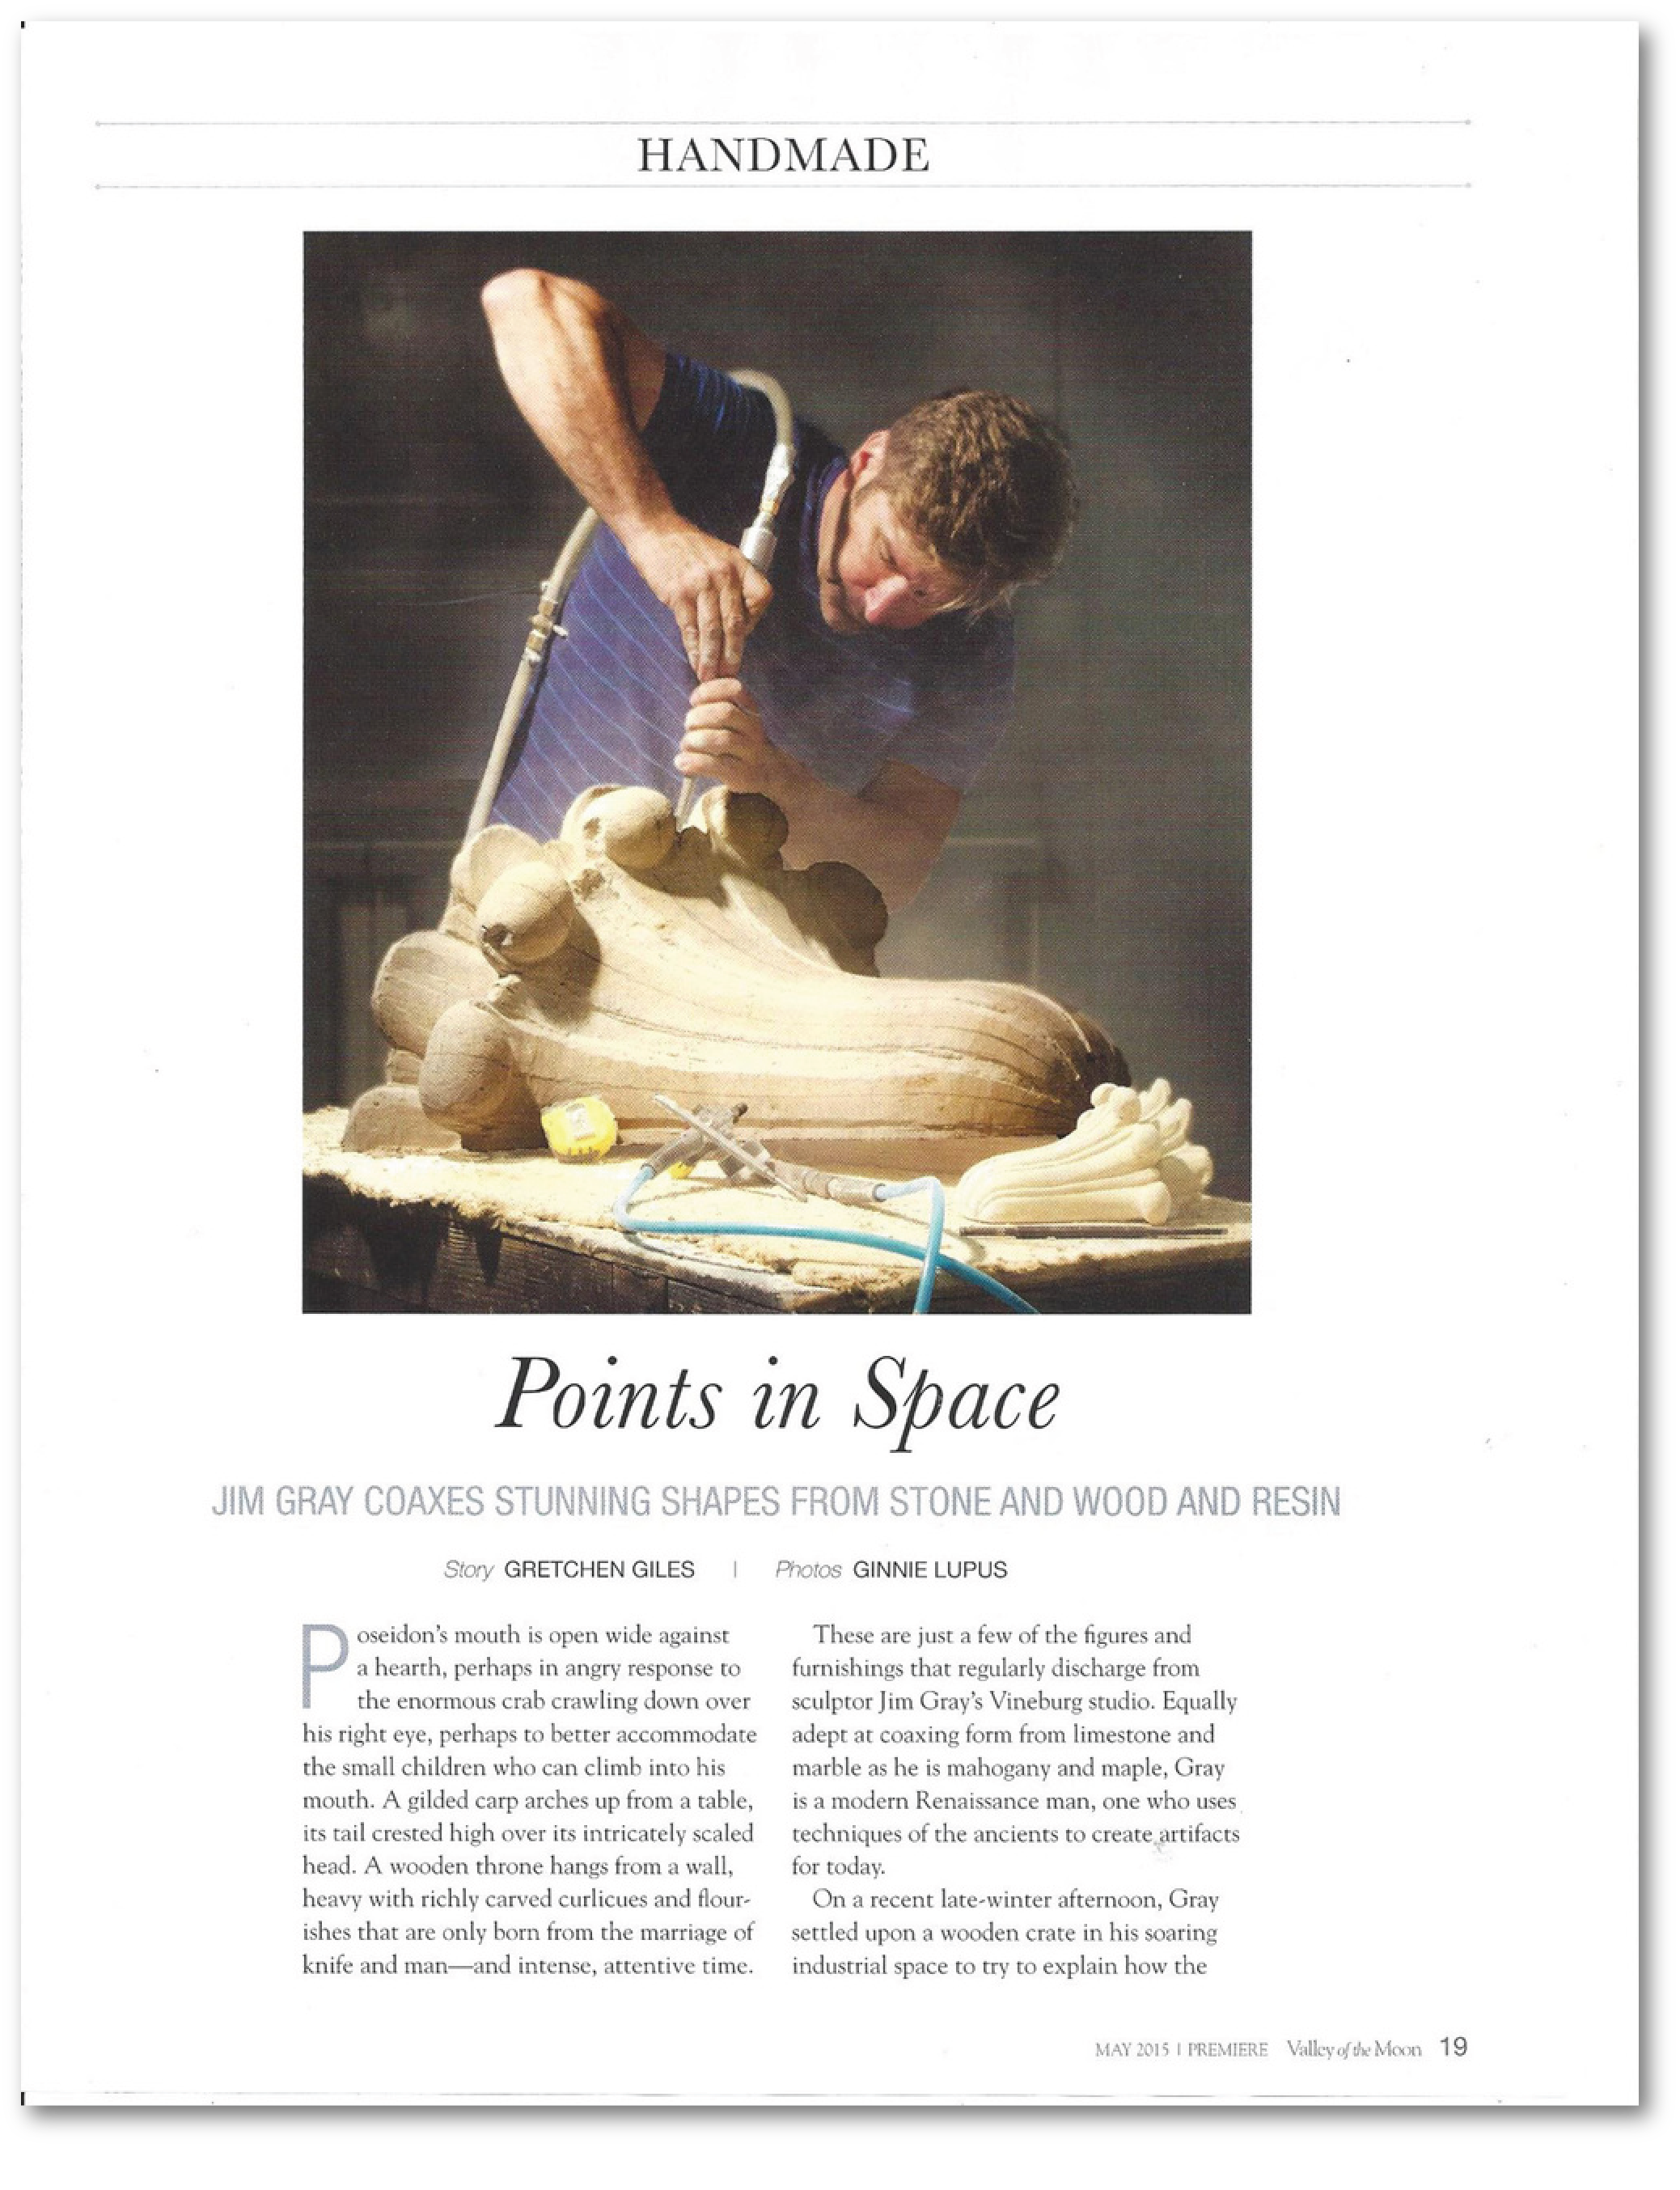 VALLEY OF THE MOON ARTICLE, HANDMADE SECTION, MAY 2015